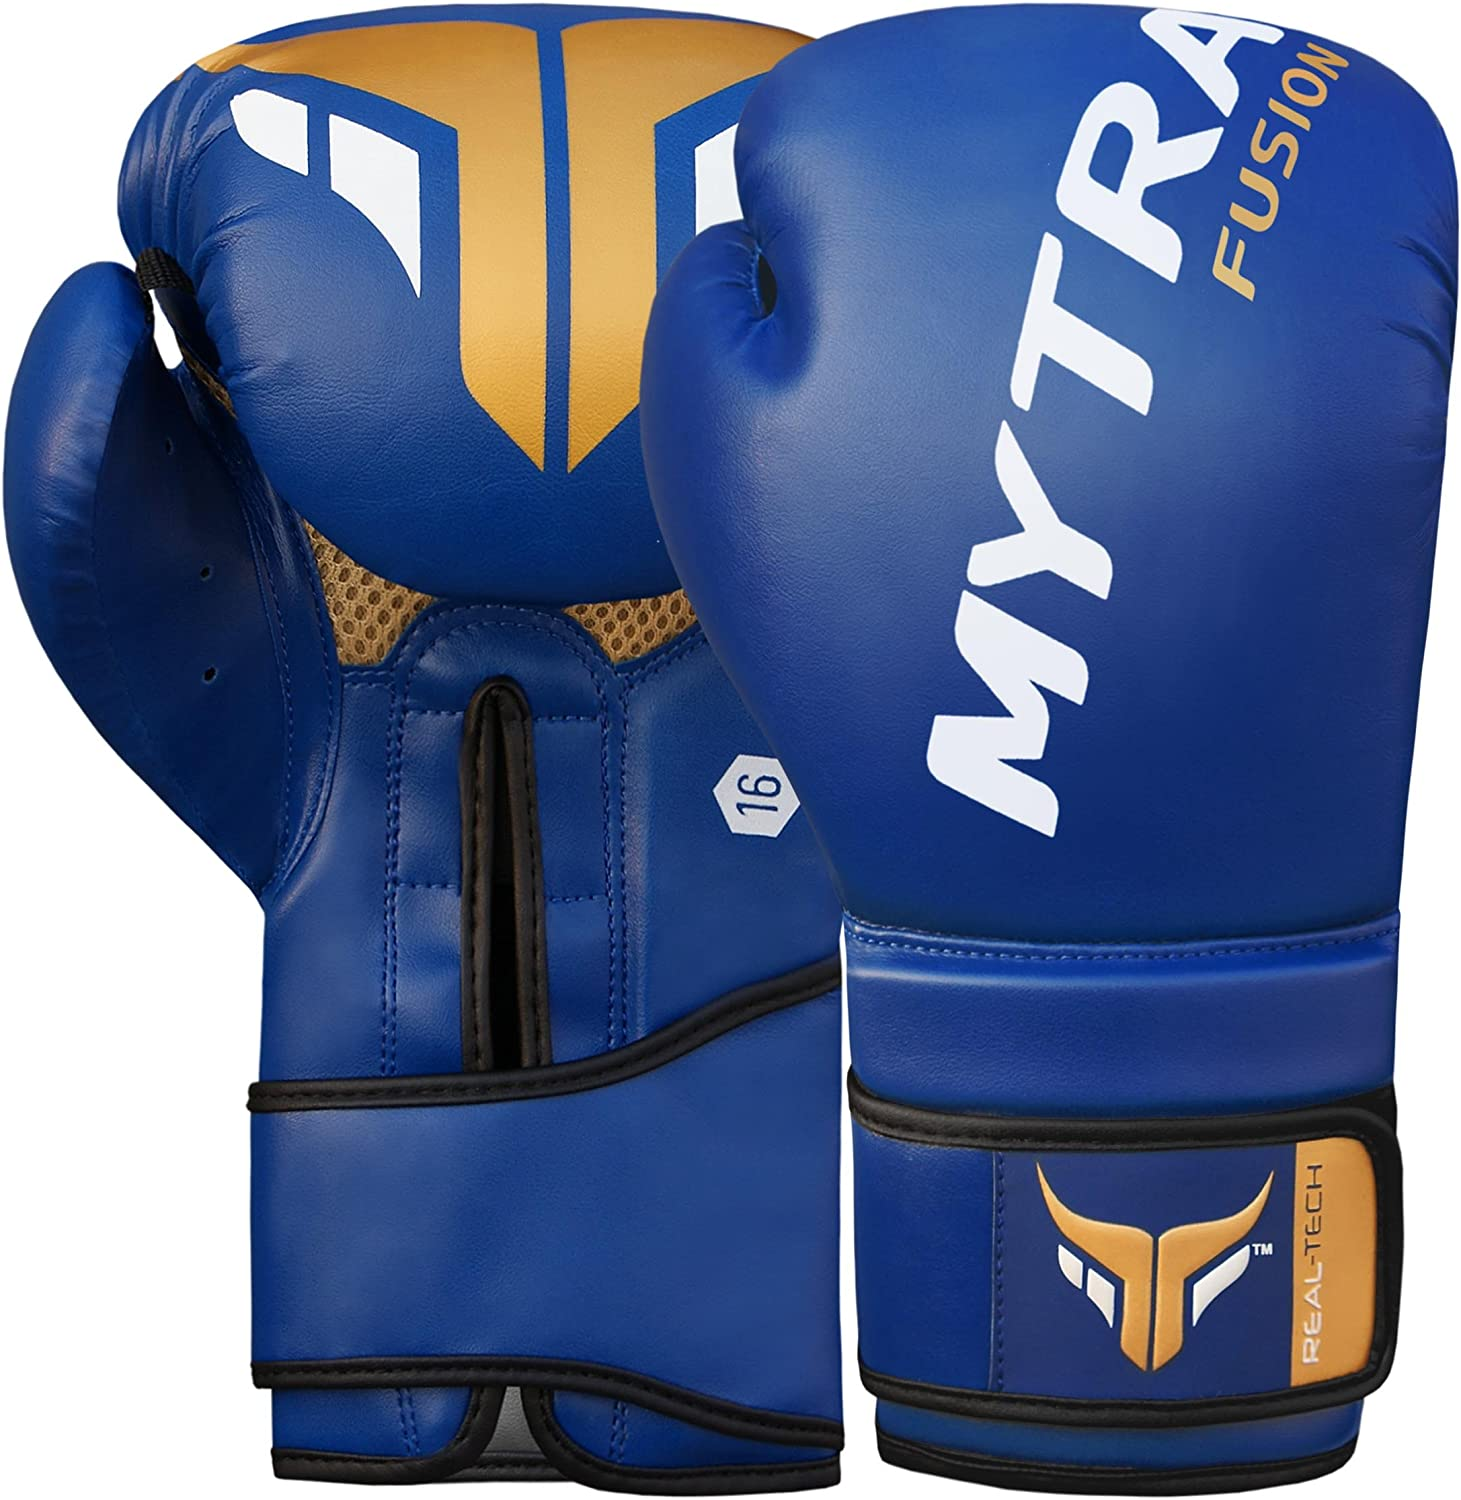 Mytra Fusion Boxing Gloves Synthetic Leather Boxing Gloves